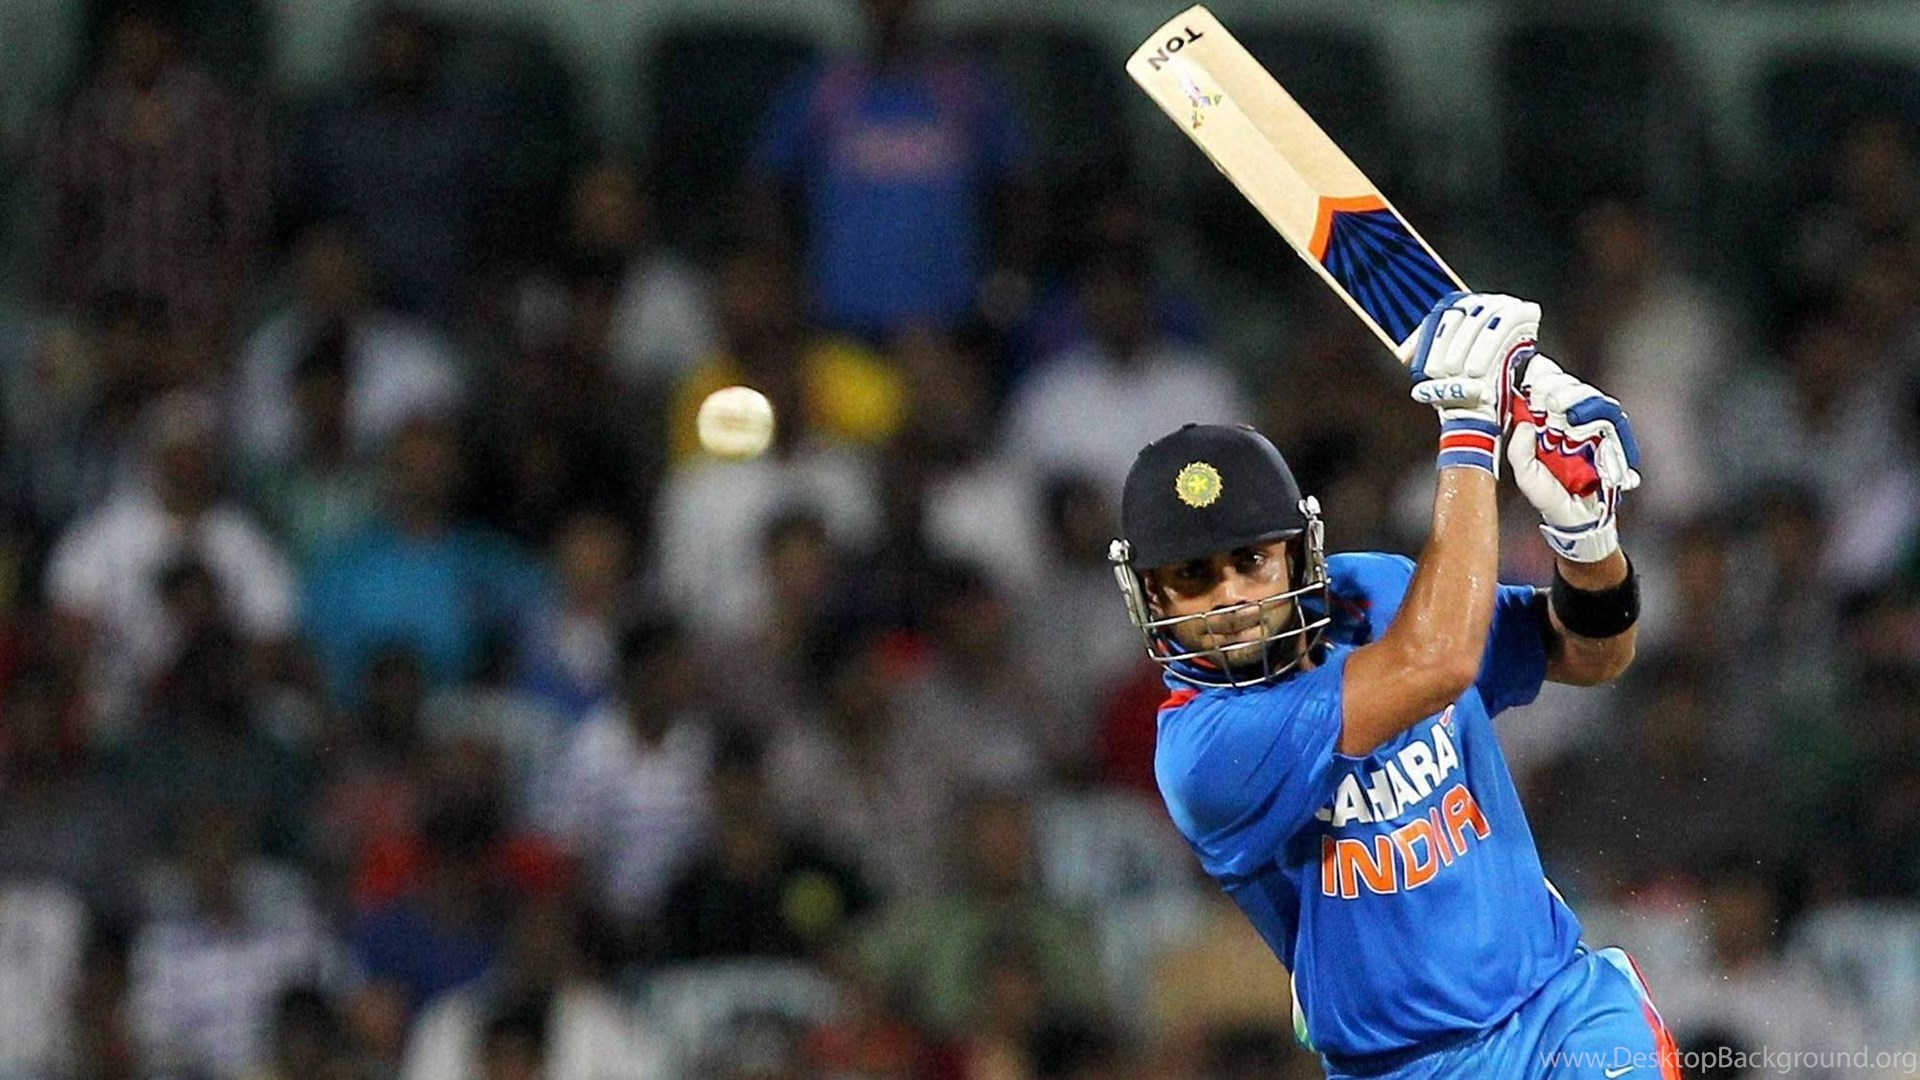 Virat Kohli Hd Wallpapers And Images New Wallpapers Desktop Background